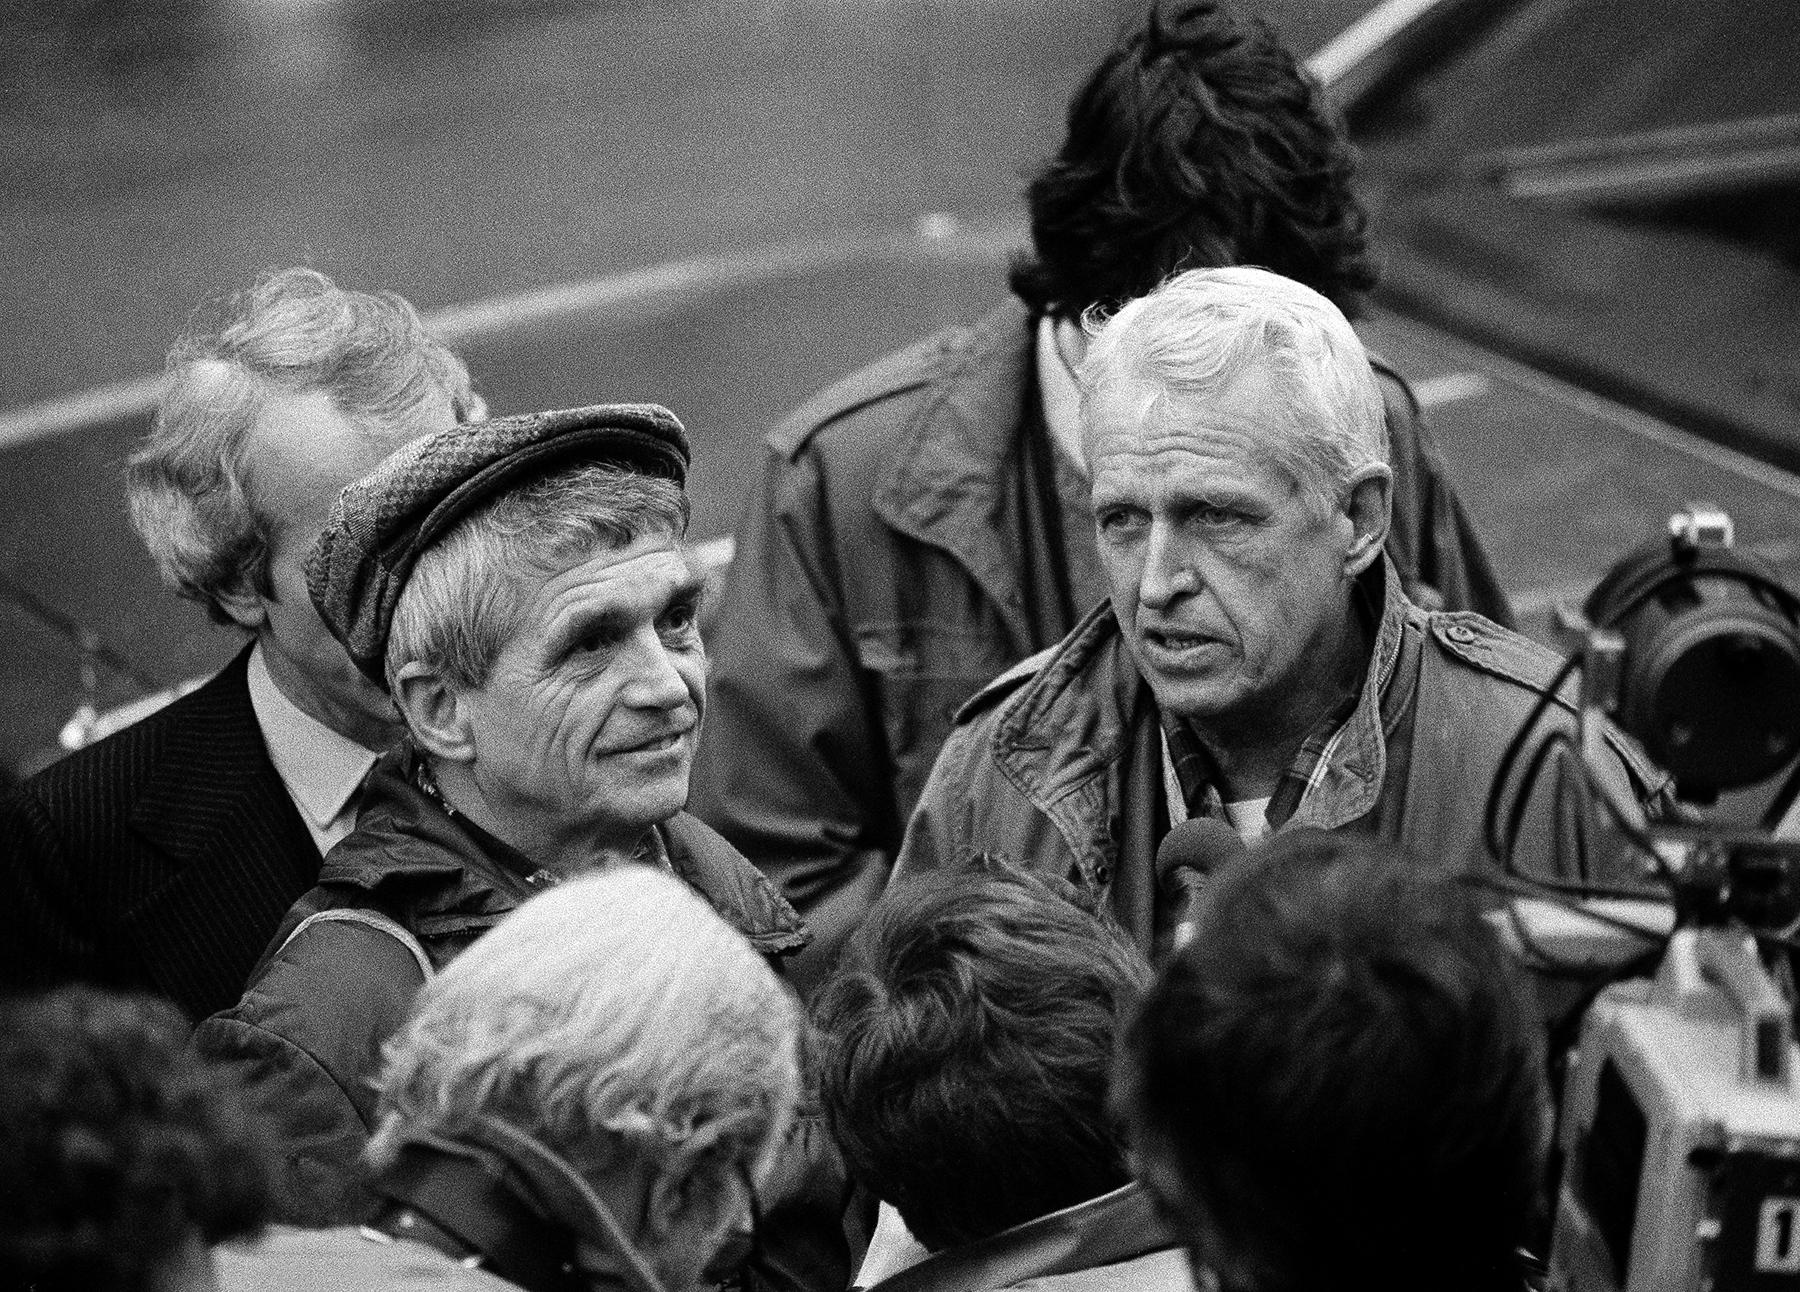 Jesuit priests and anti-war activists, Fr. Daniel Berrigan, left, and his brother Fr. Philip Berrigan, are pictured outside the Montgomery County Court House in Norristown, Penn., Feb. 23, 1981. They are being tried in connection with burglary, assault and criminal mischief at a nuclear weapons plant, along with other members of the Plowshares Eight, in King of Prussia, Penn. (AP Photo/Paul Shane)